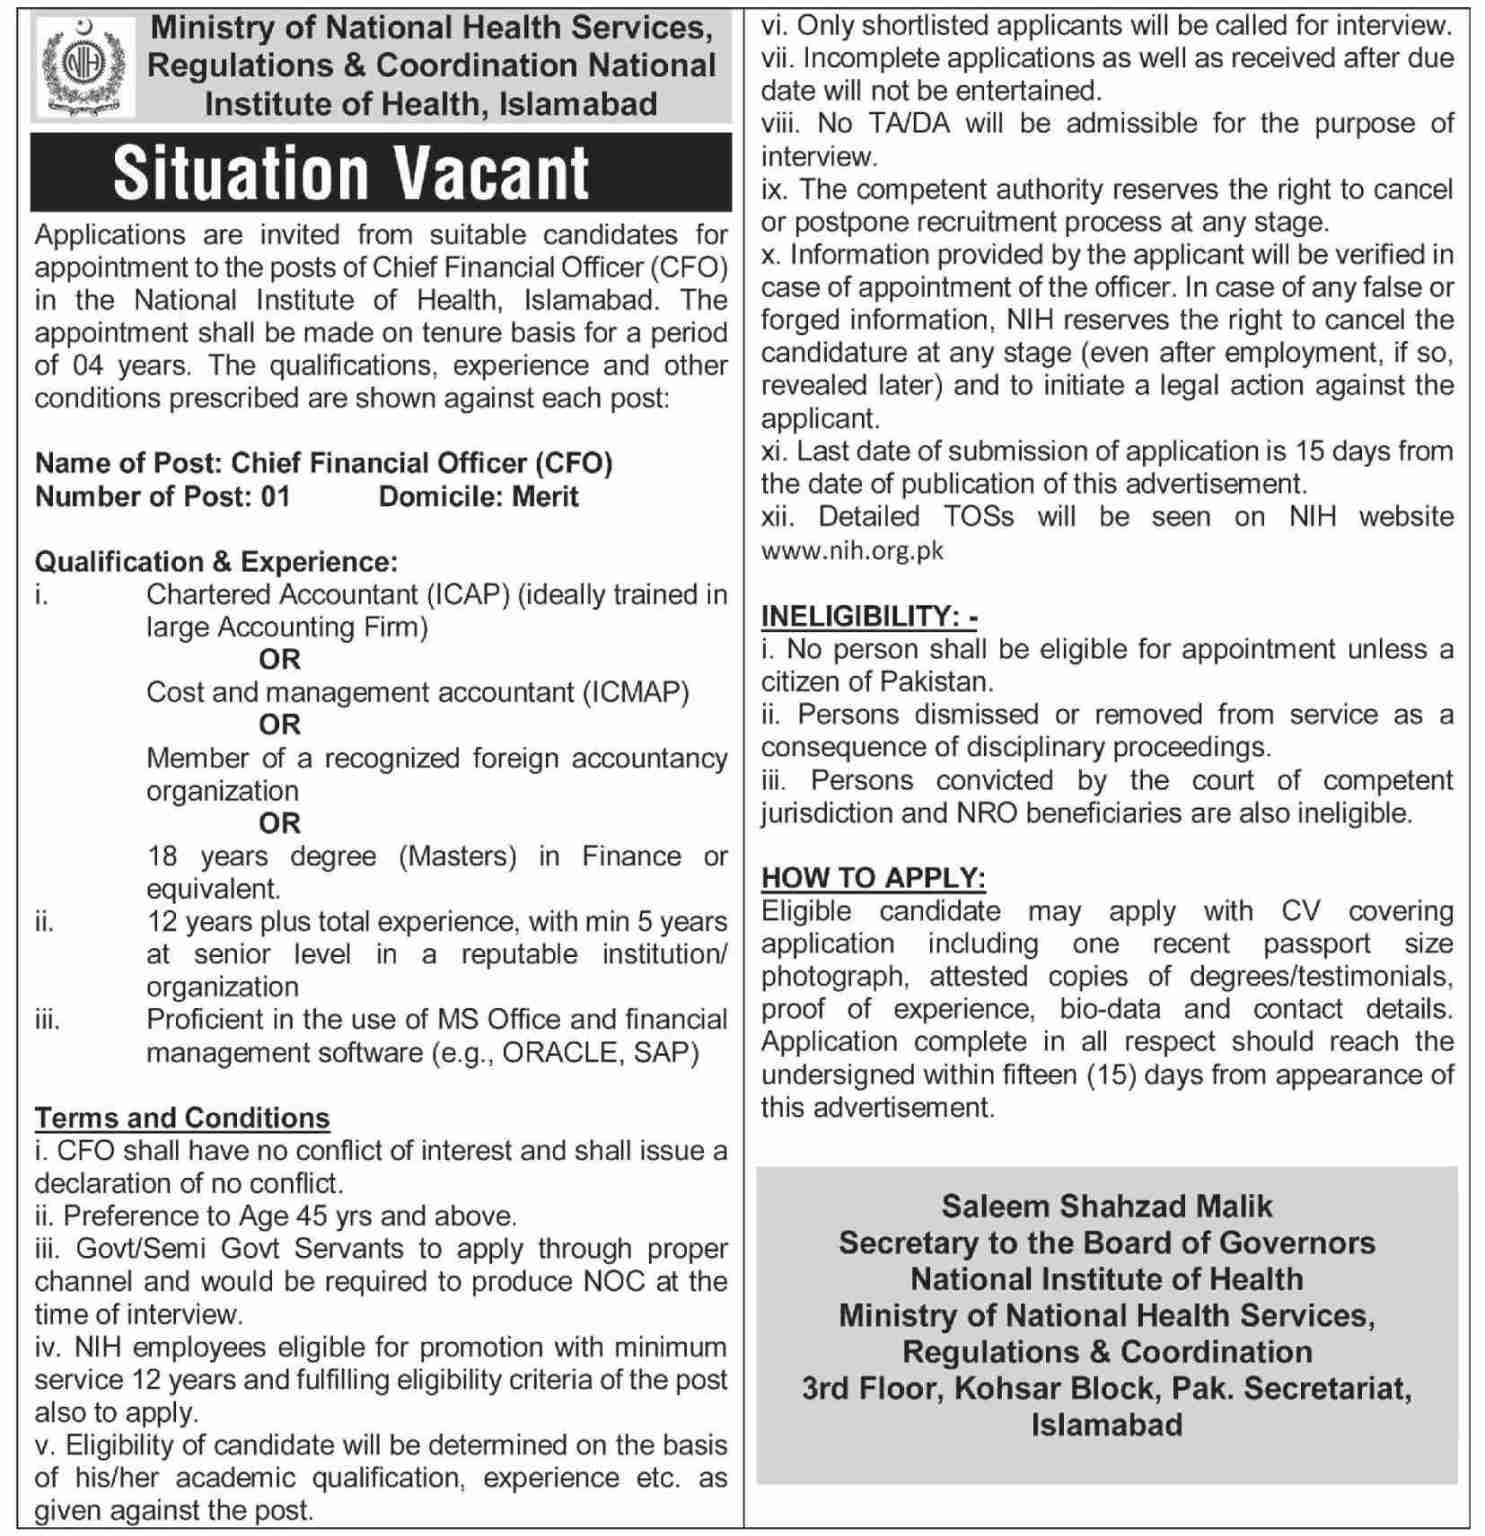 Ministry of National Health Services Jobs 2021 for CEO